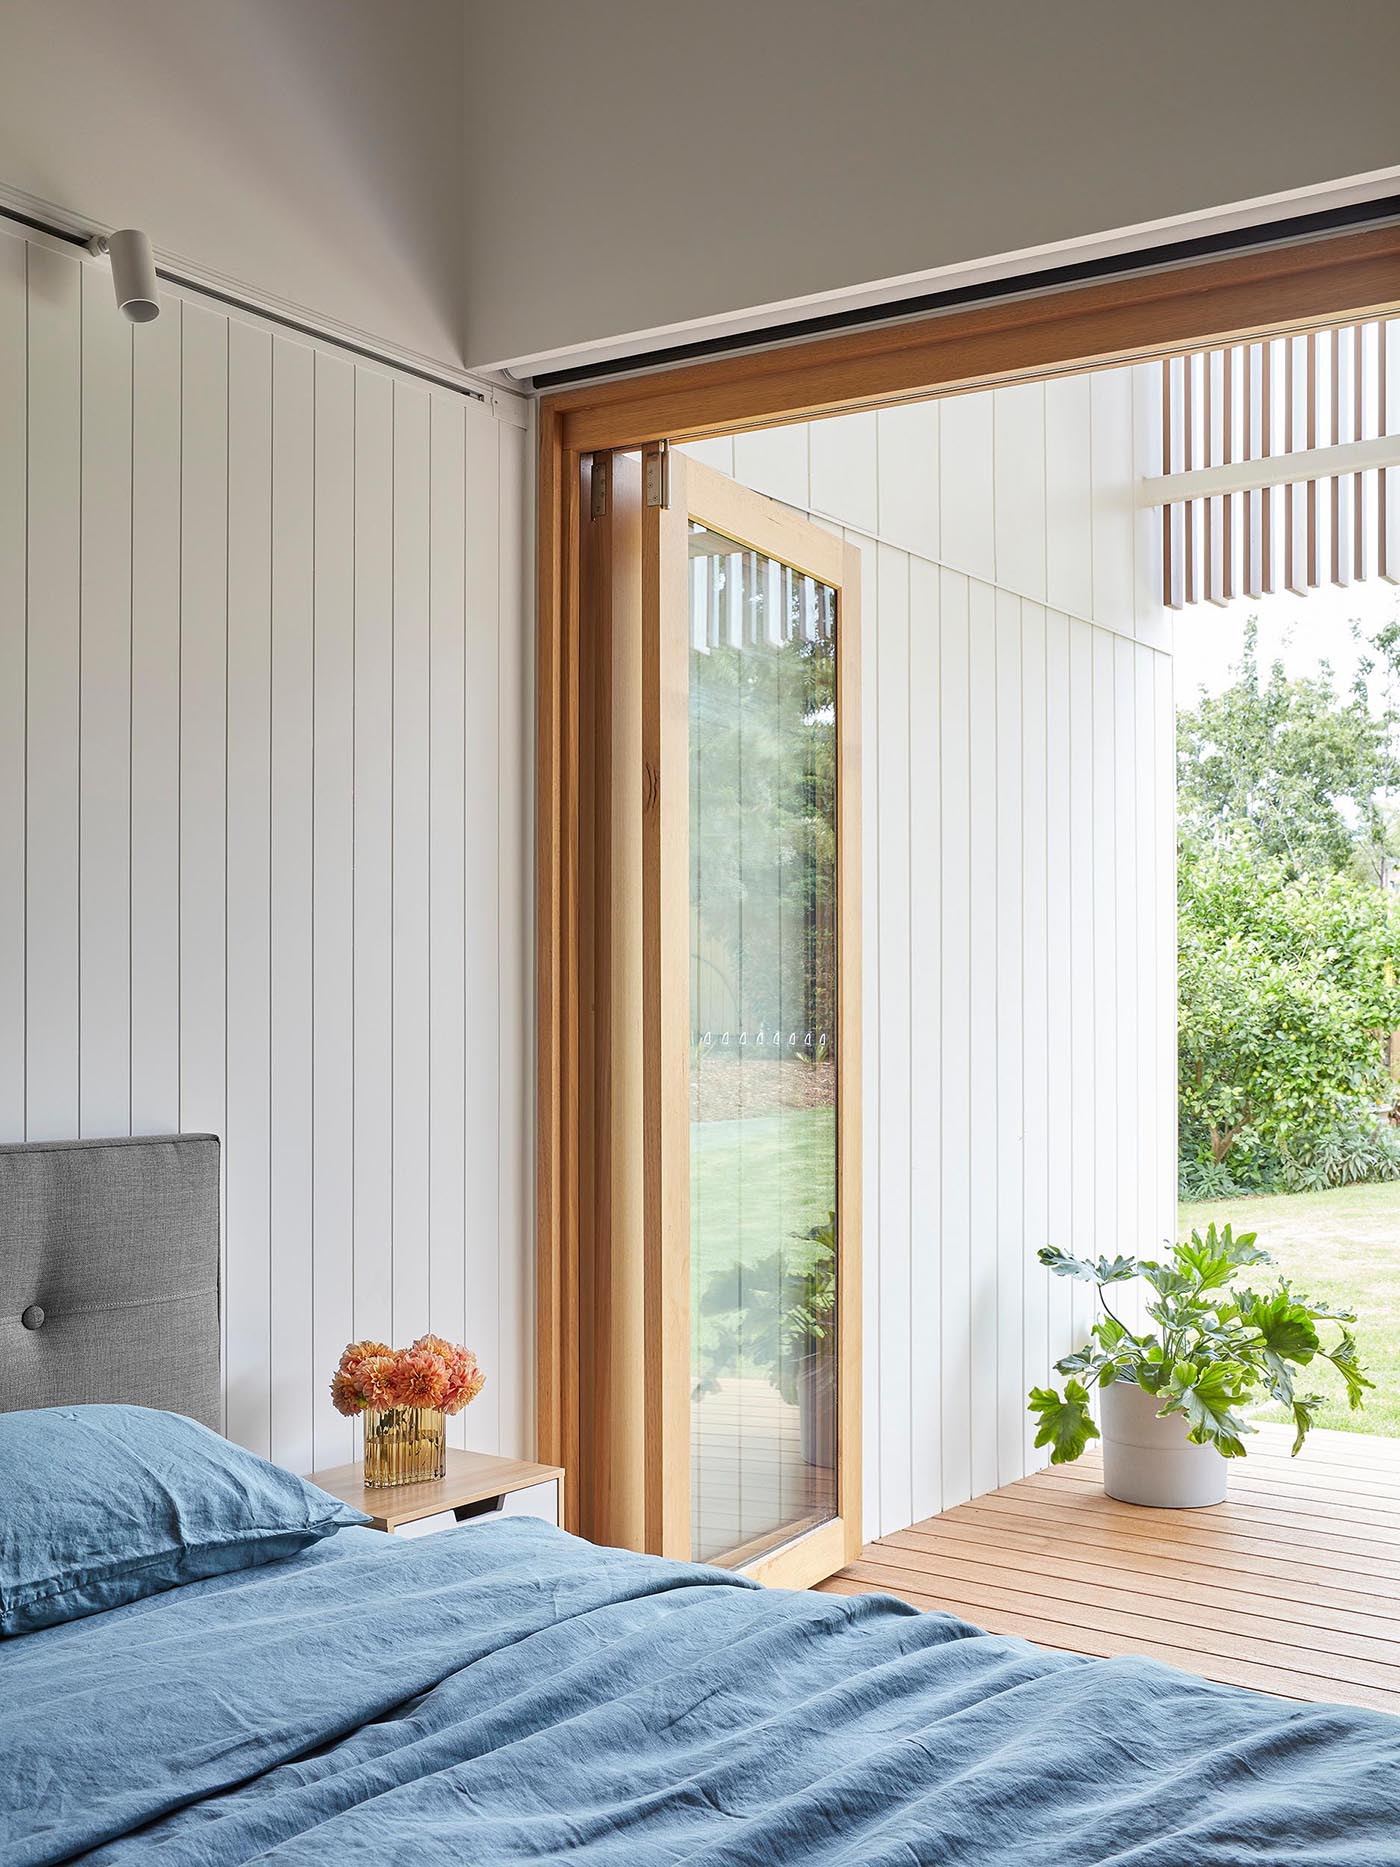 Folding wood framed glass doors open this modern bedroom with textured walls to the deck outside.